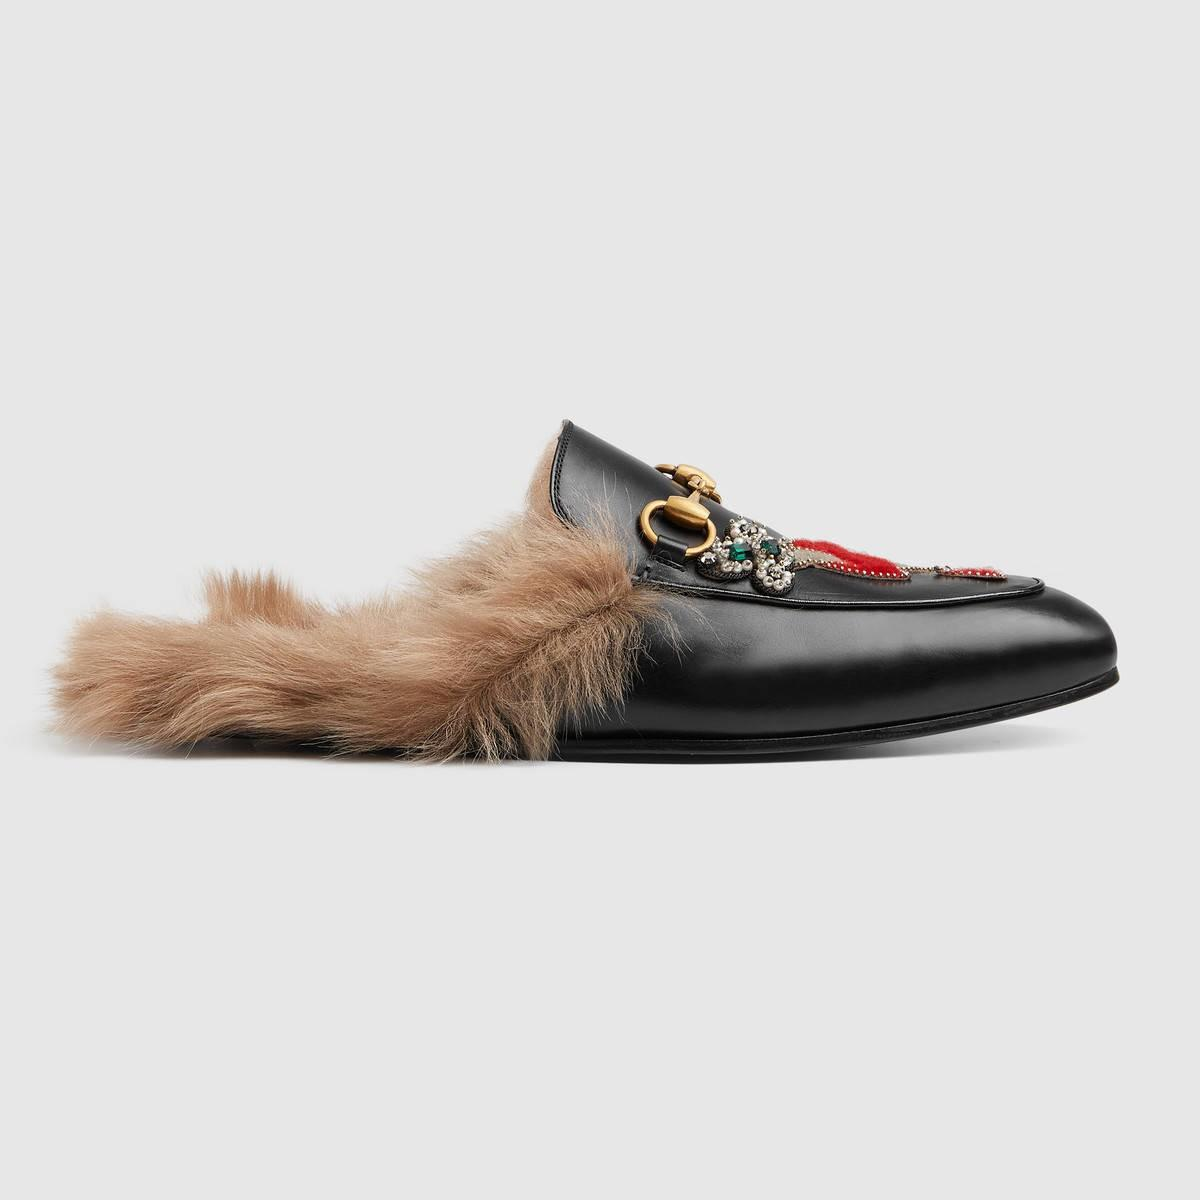 Gucci Leathers Princetown slipper with appliqués - black leather